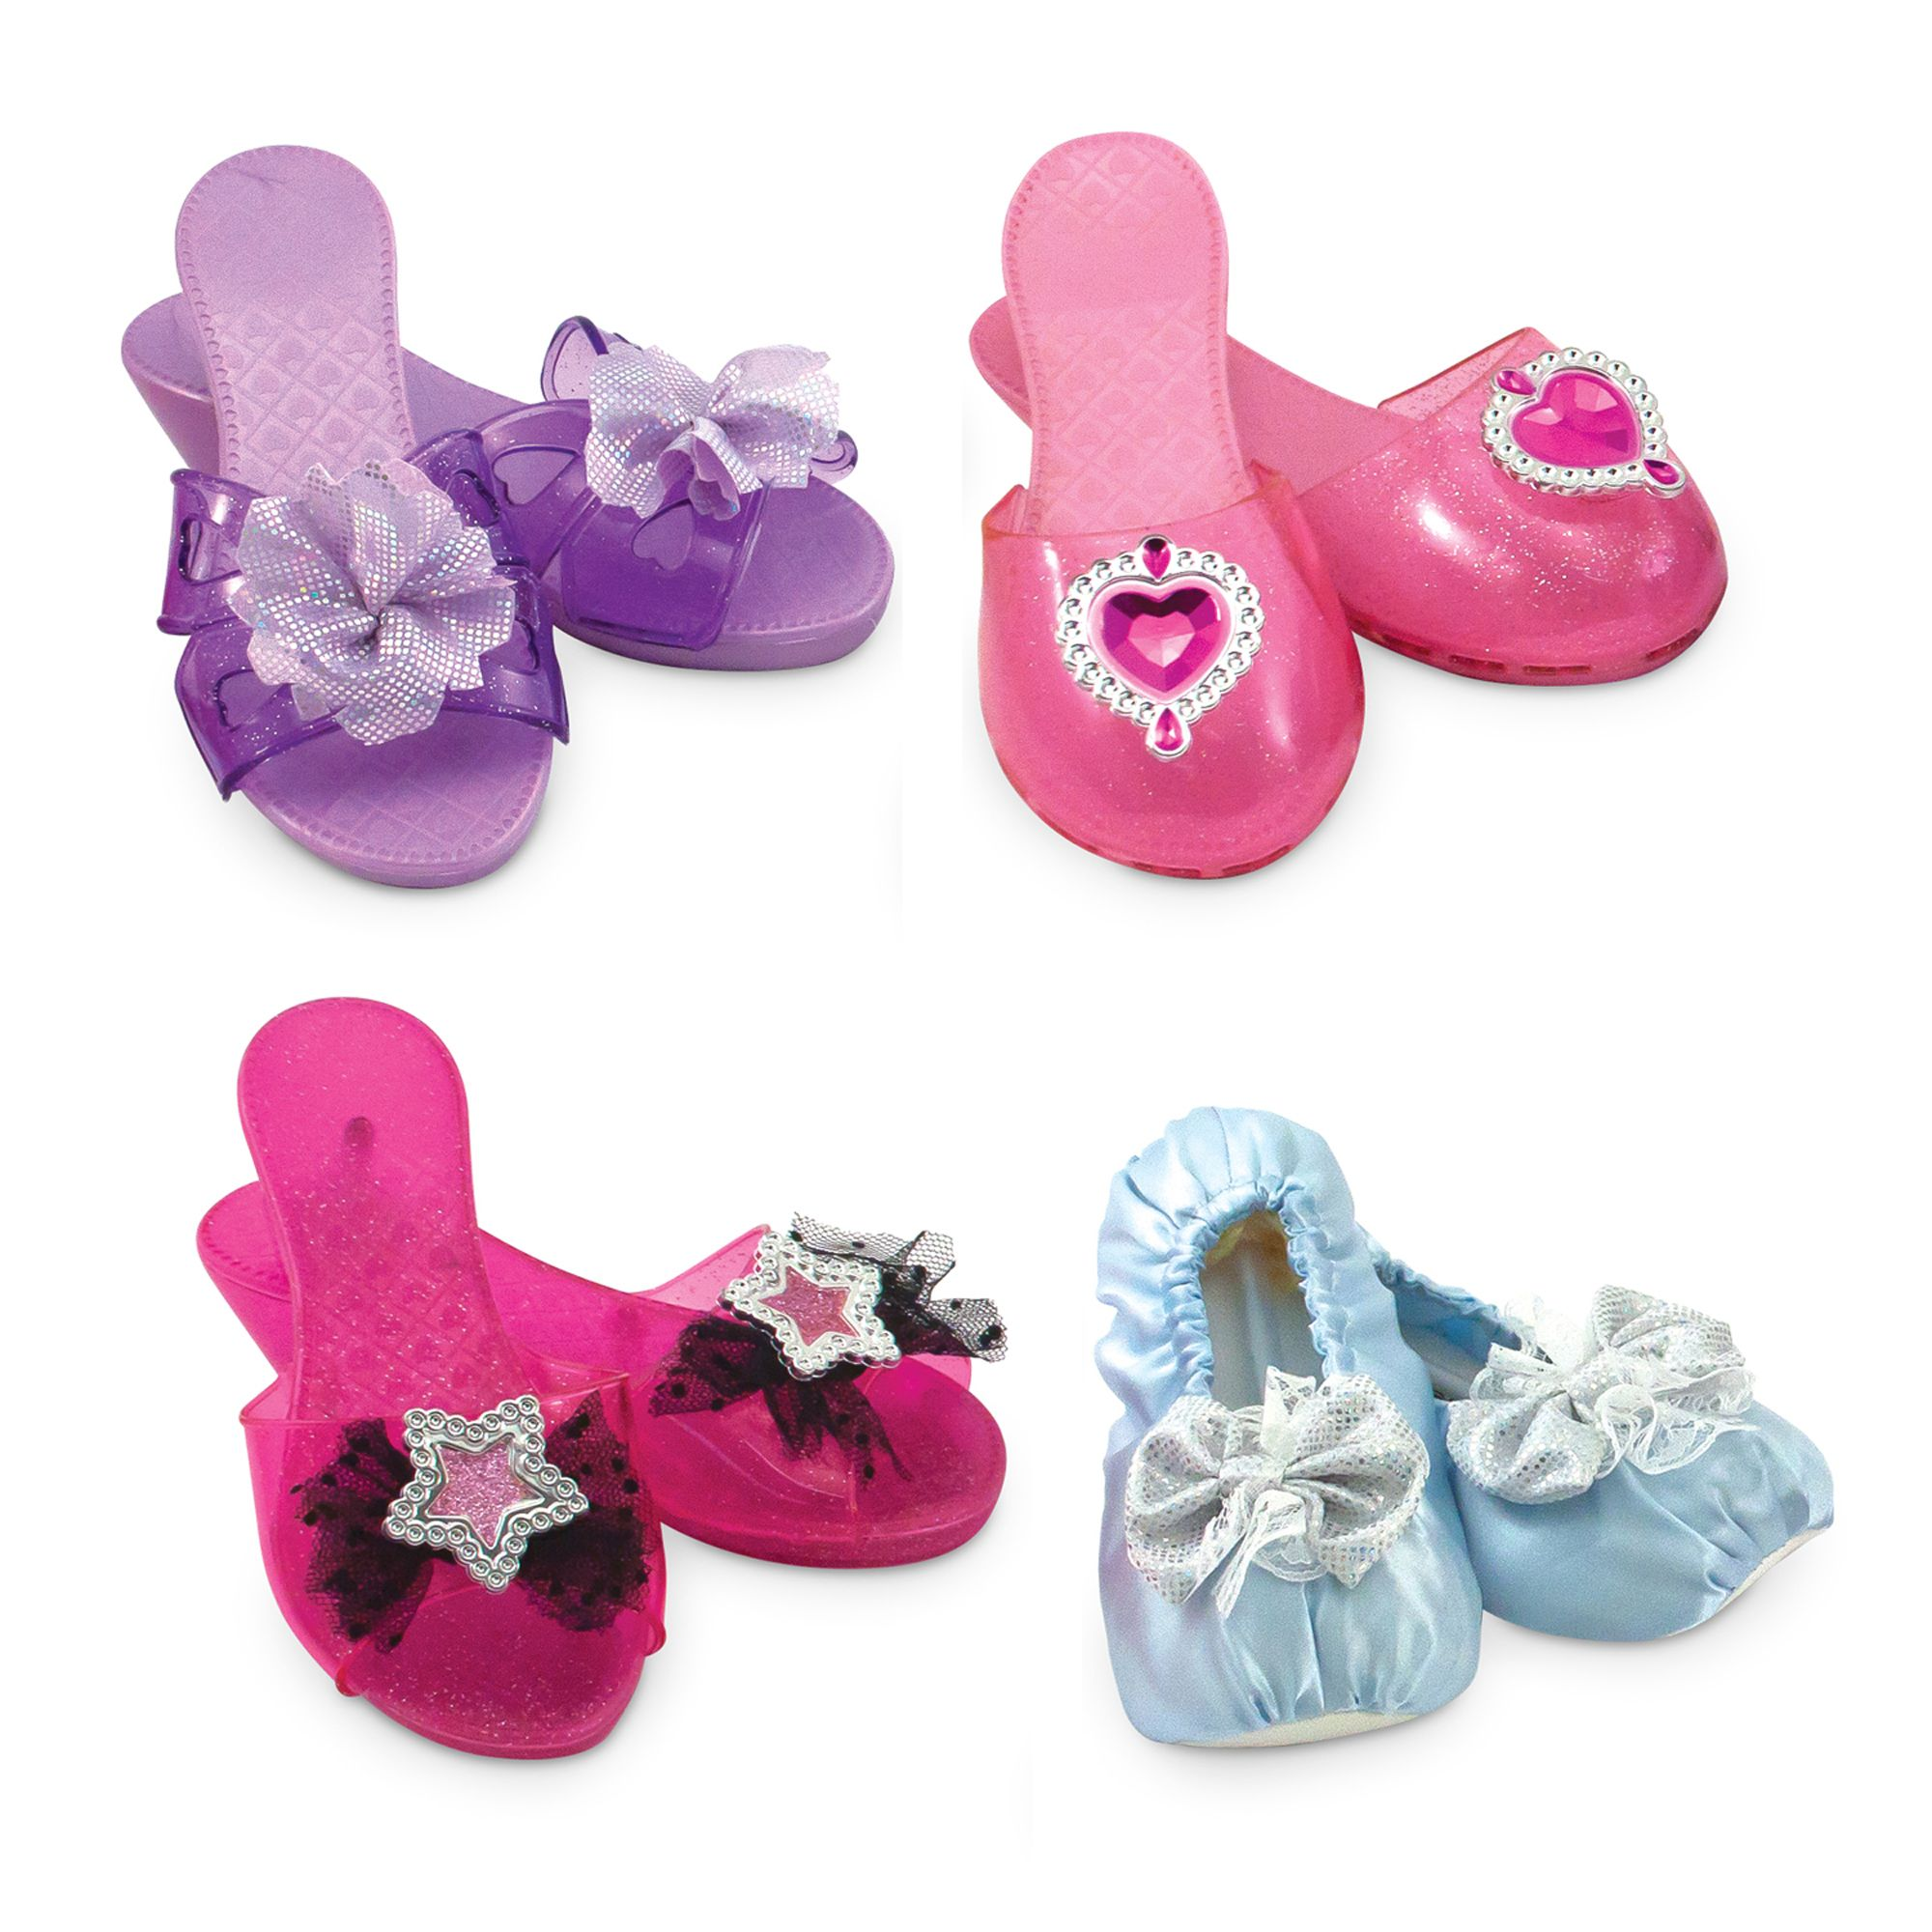 Melissa & Doug 4 Style Dress-Up Shoes, Role Play Collection